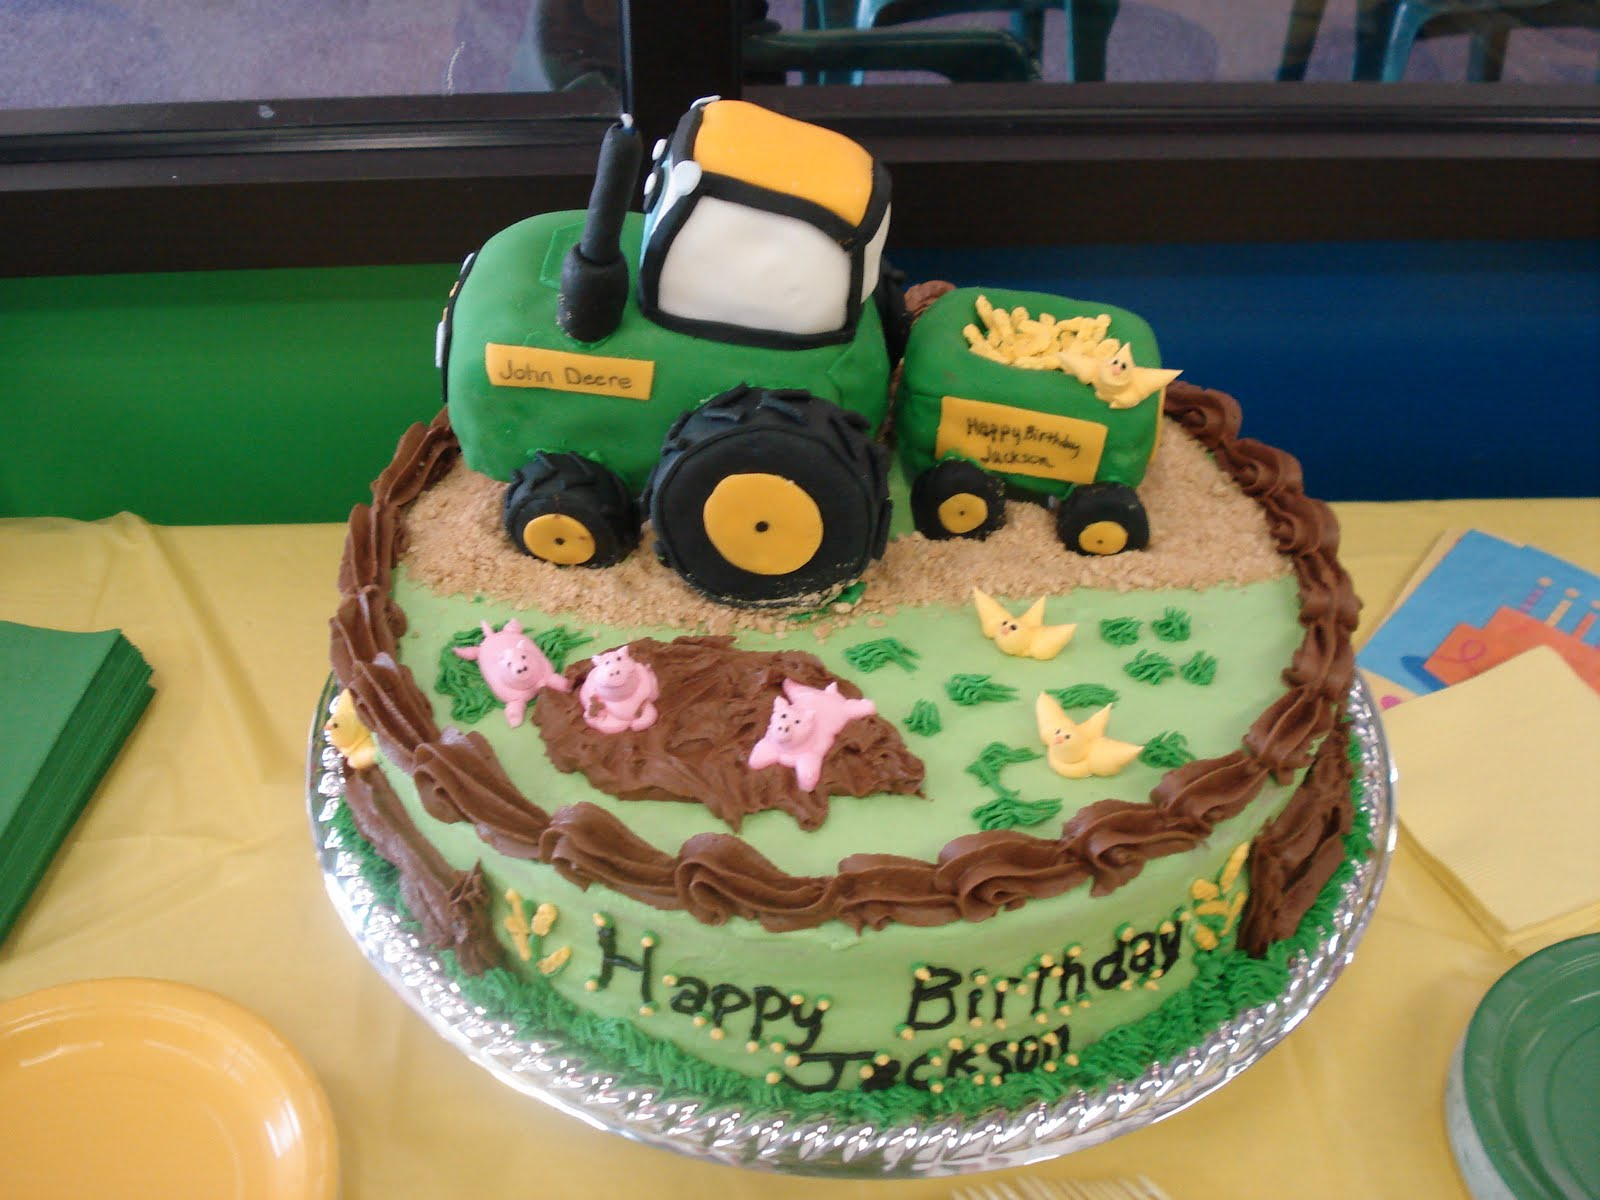 Strange Farm Themed Birthday Party Life Cake Whimsy Funny Birthday Cards Online Sheoxdamsfinfo